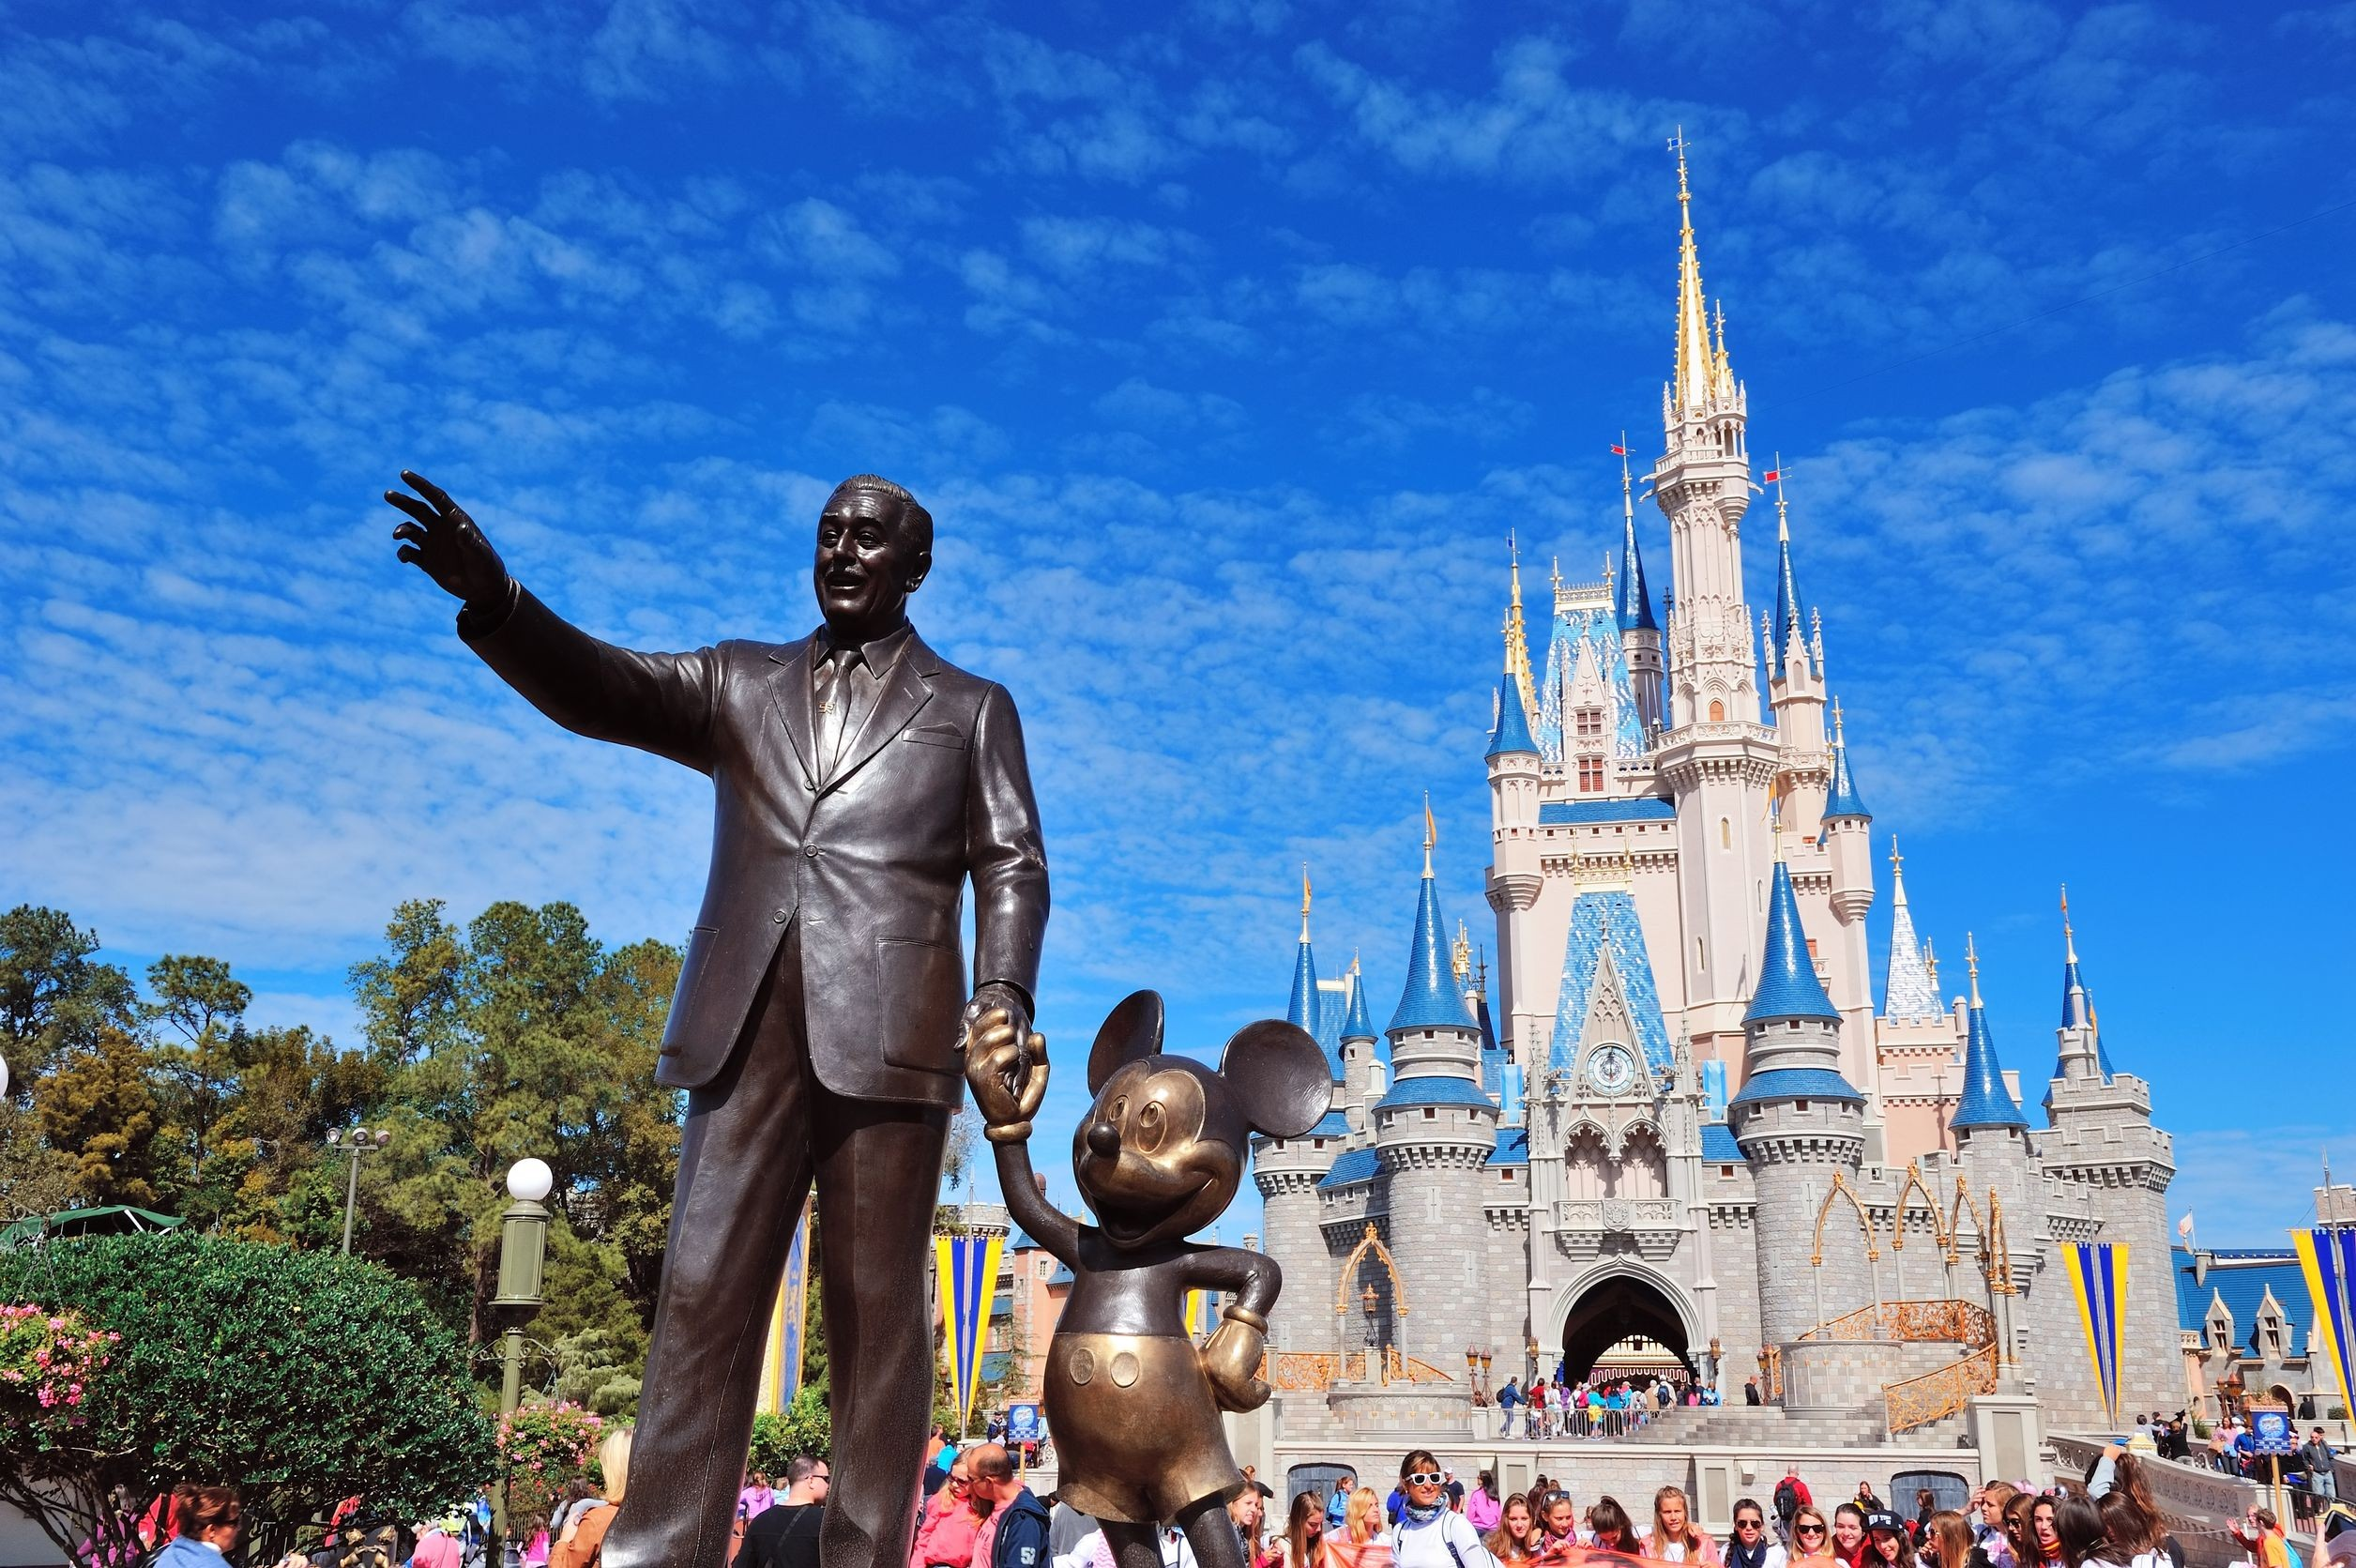 A great-grandmother with arthritis was arrested at Disney World for